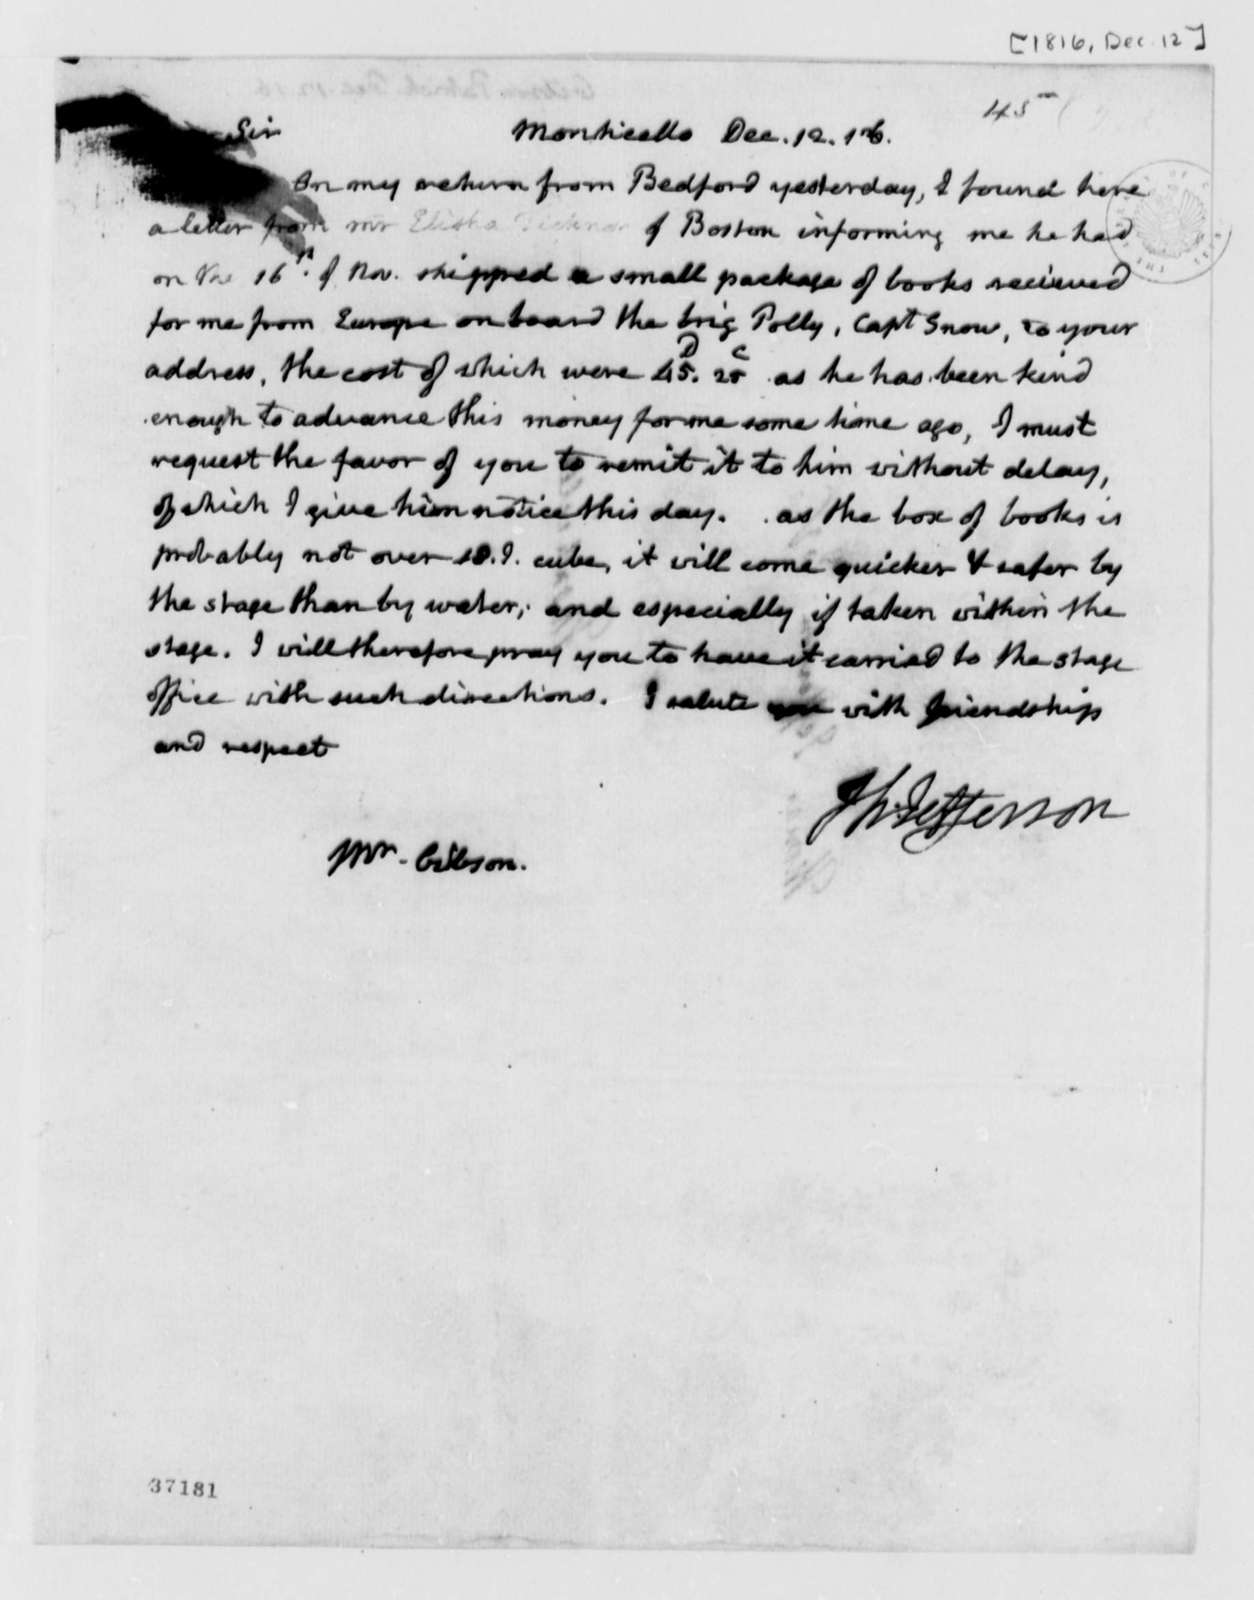 Thomas Jefferson to Patrick Gibson, December 12, 1816